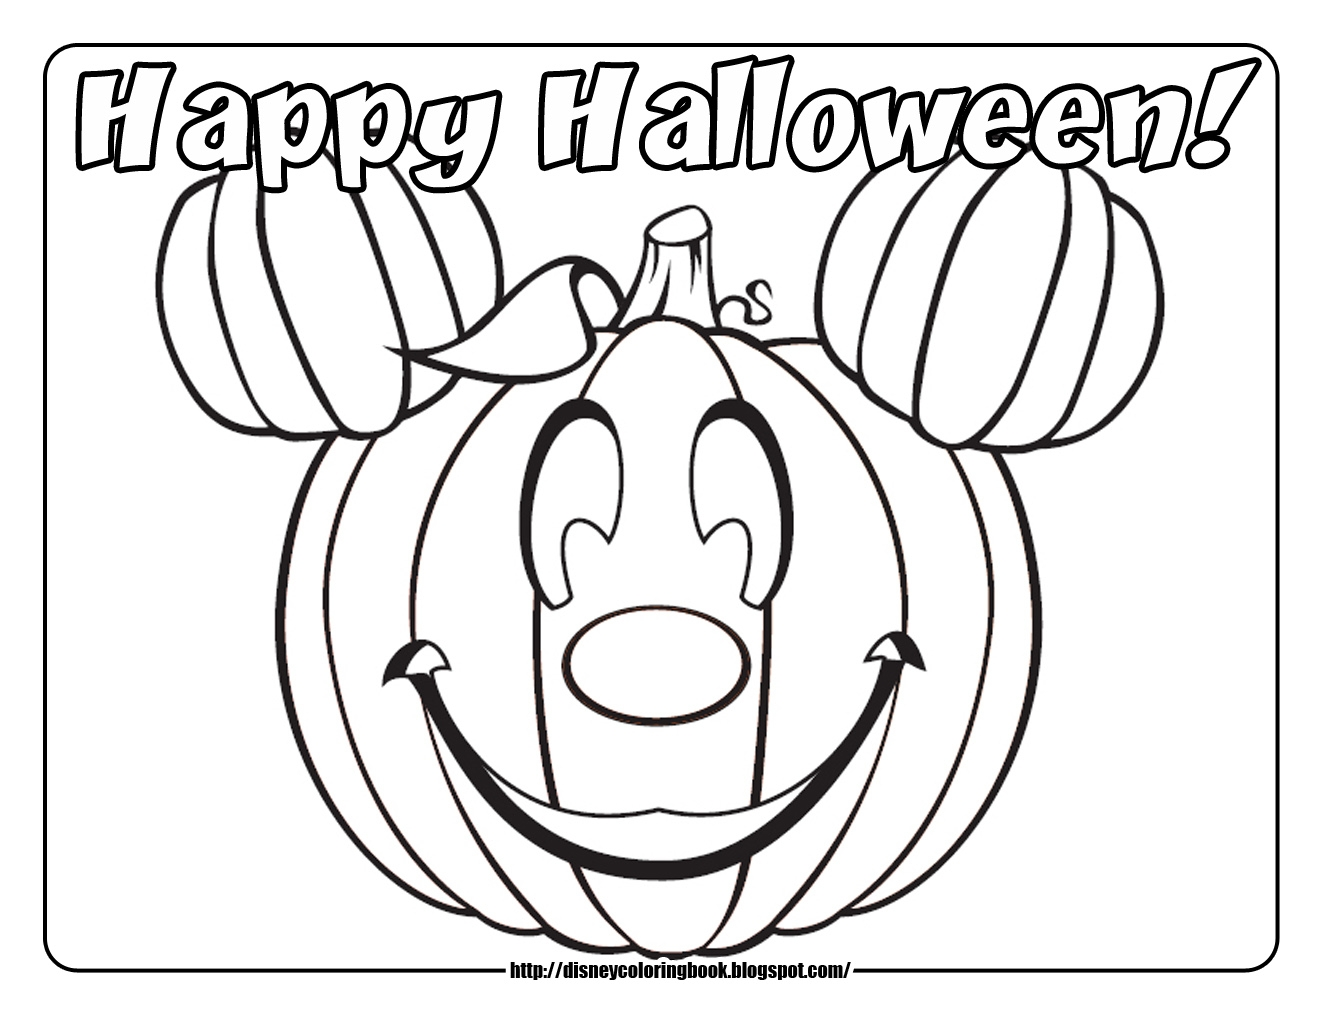 1320x1020 Unique Disney Princess Halloween Coloring Pages Gallery